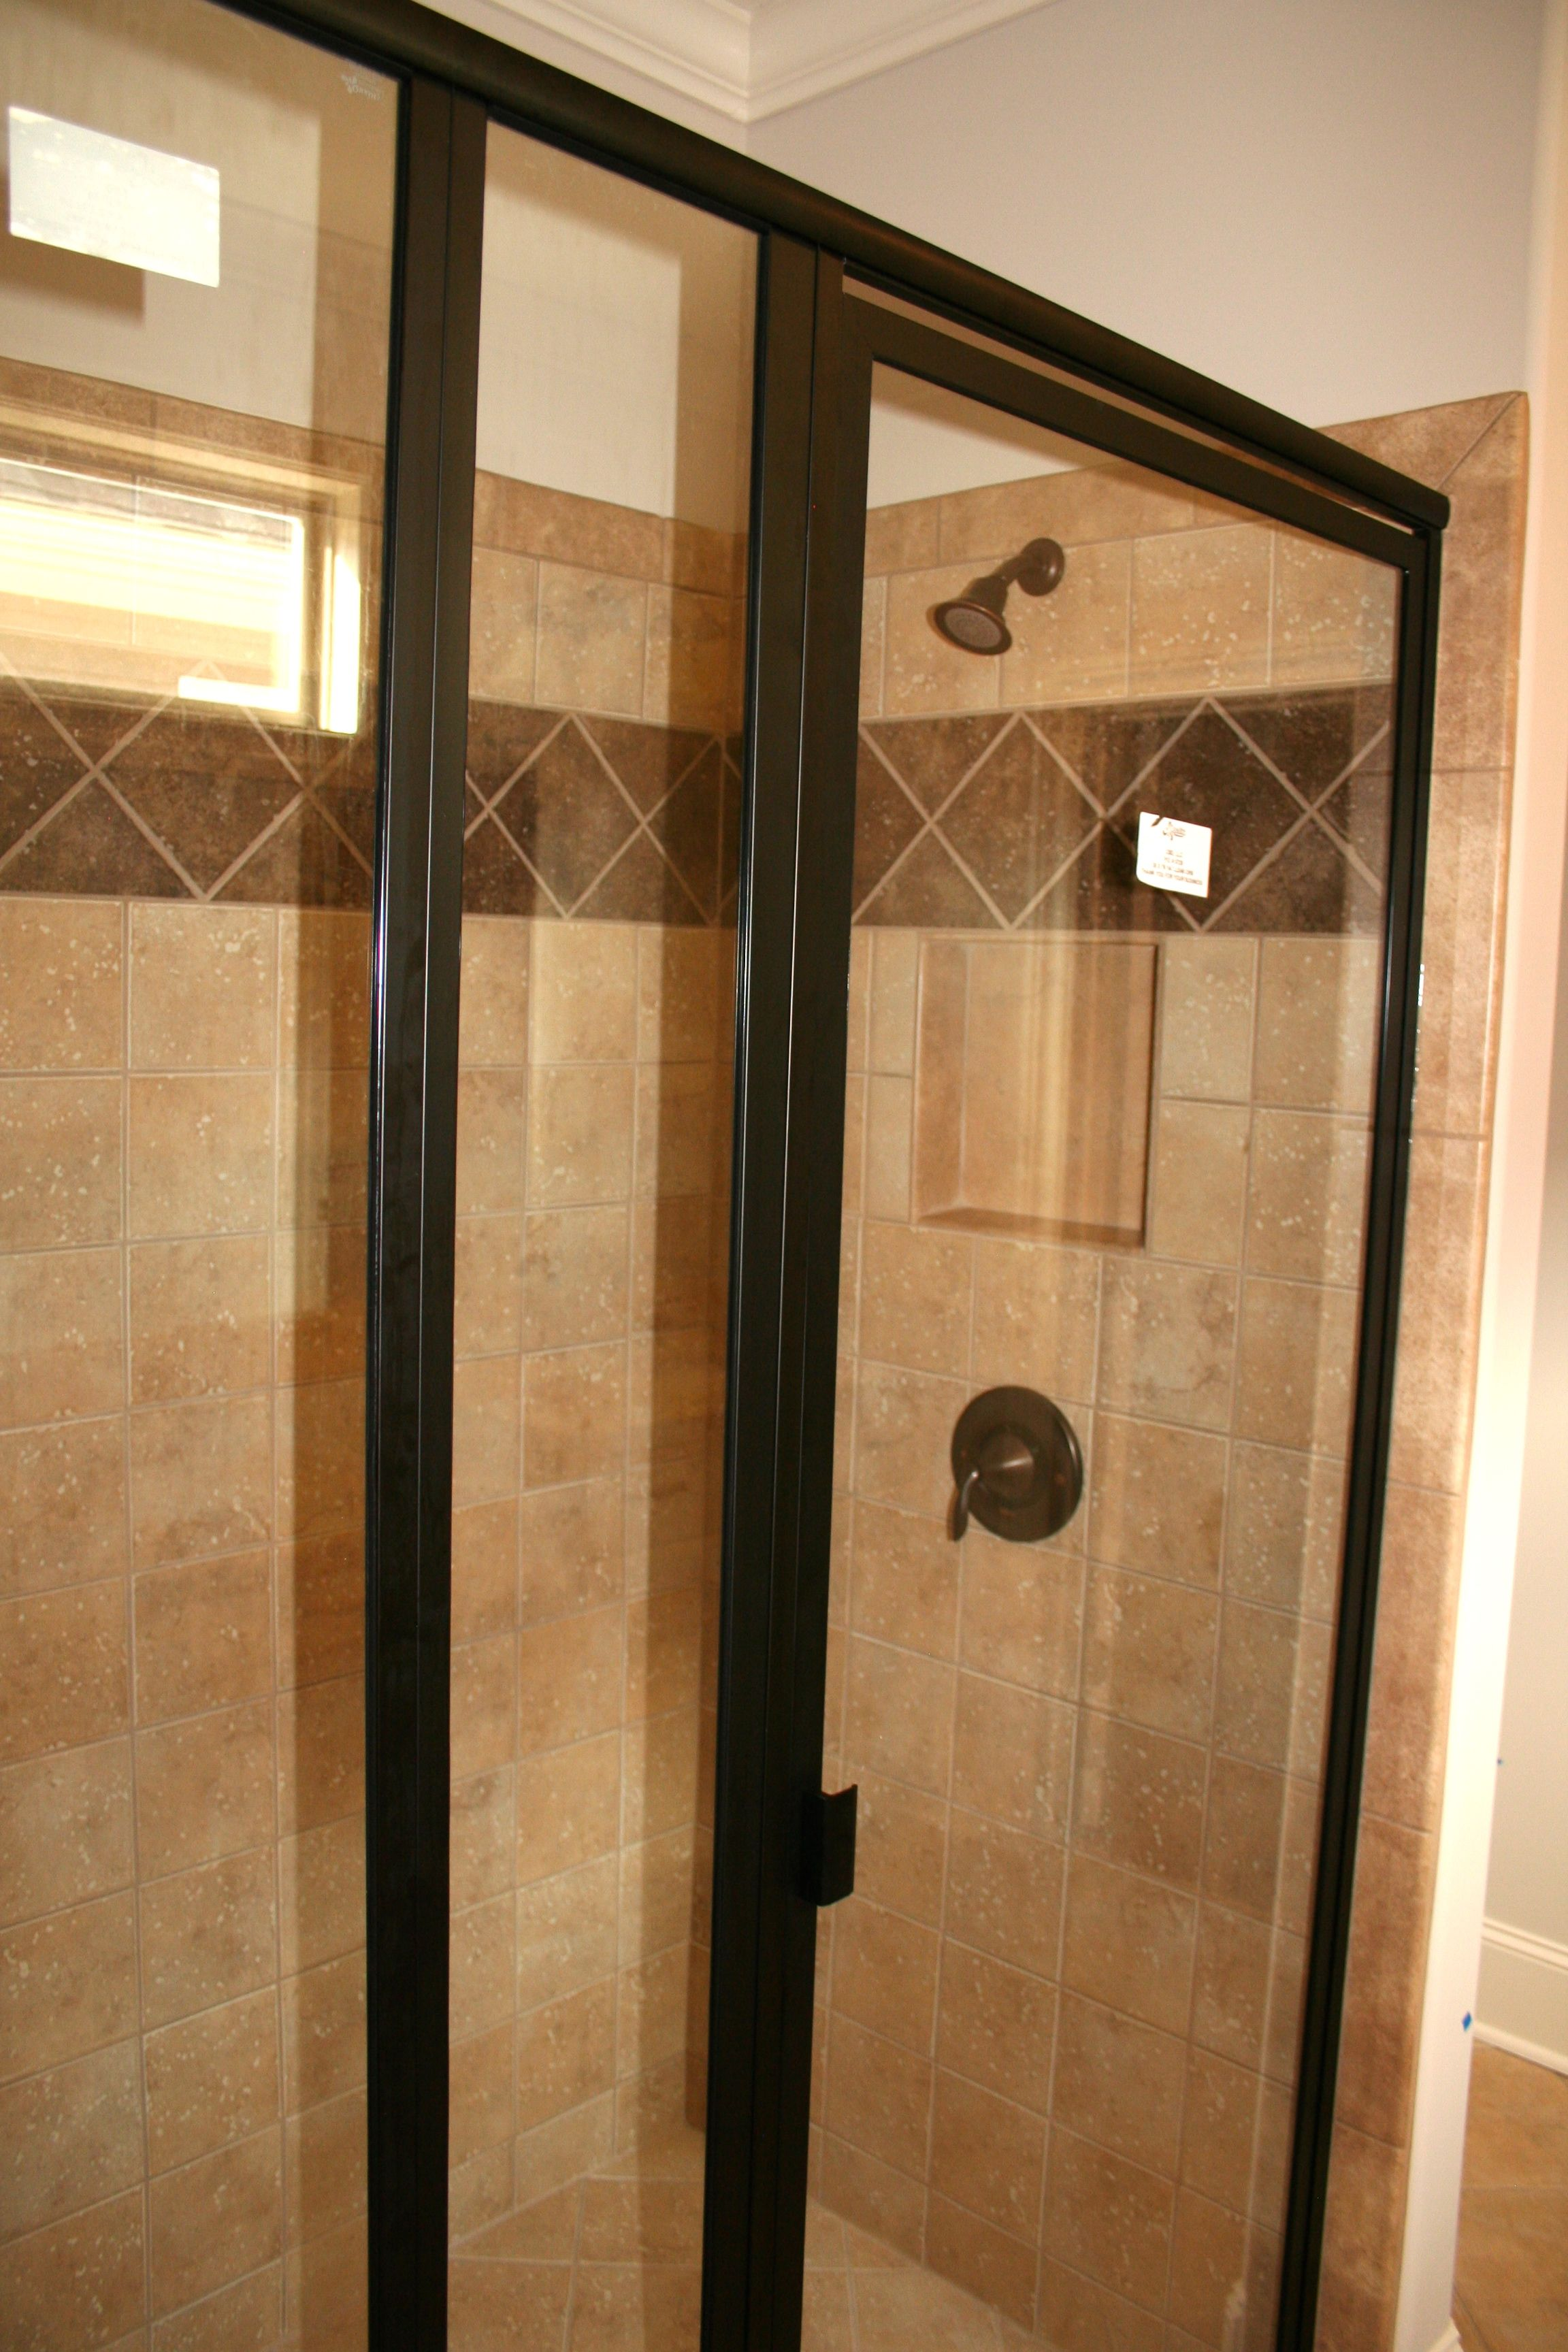 Standard Tile Travertino Royal Noce Tile with Upgrade Accent Of